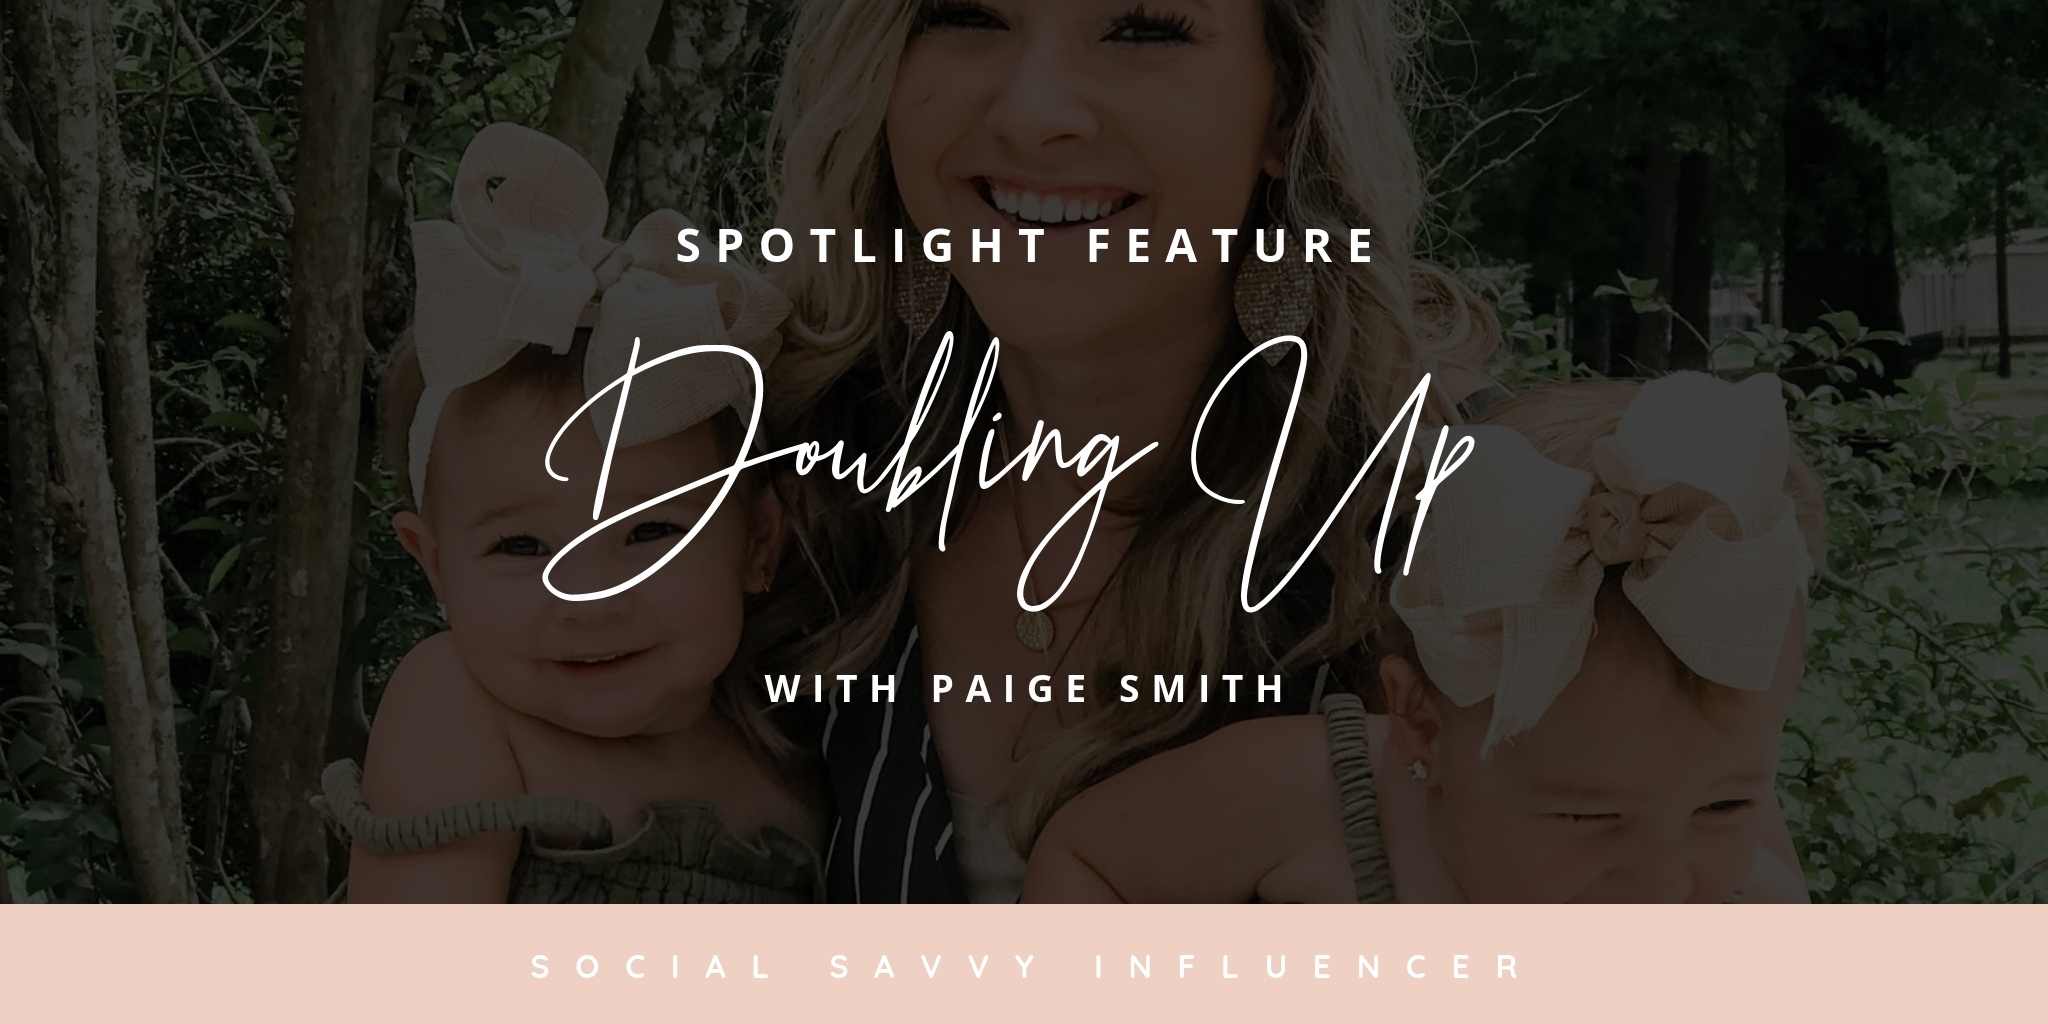 Doubling Up with Paige Smith